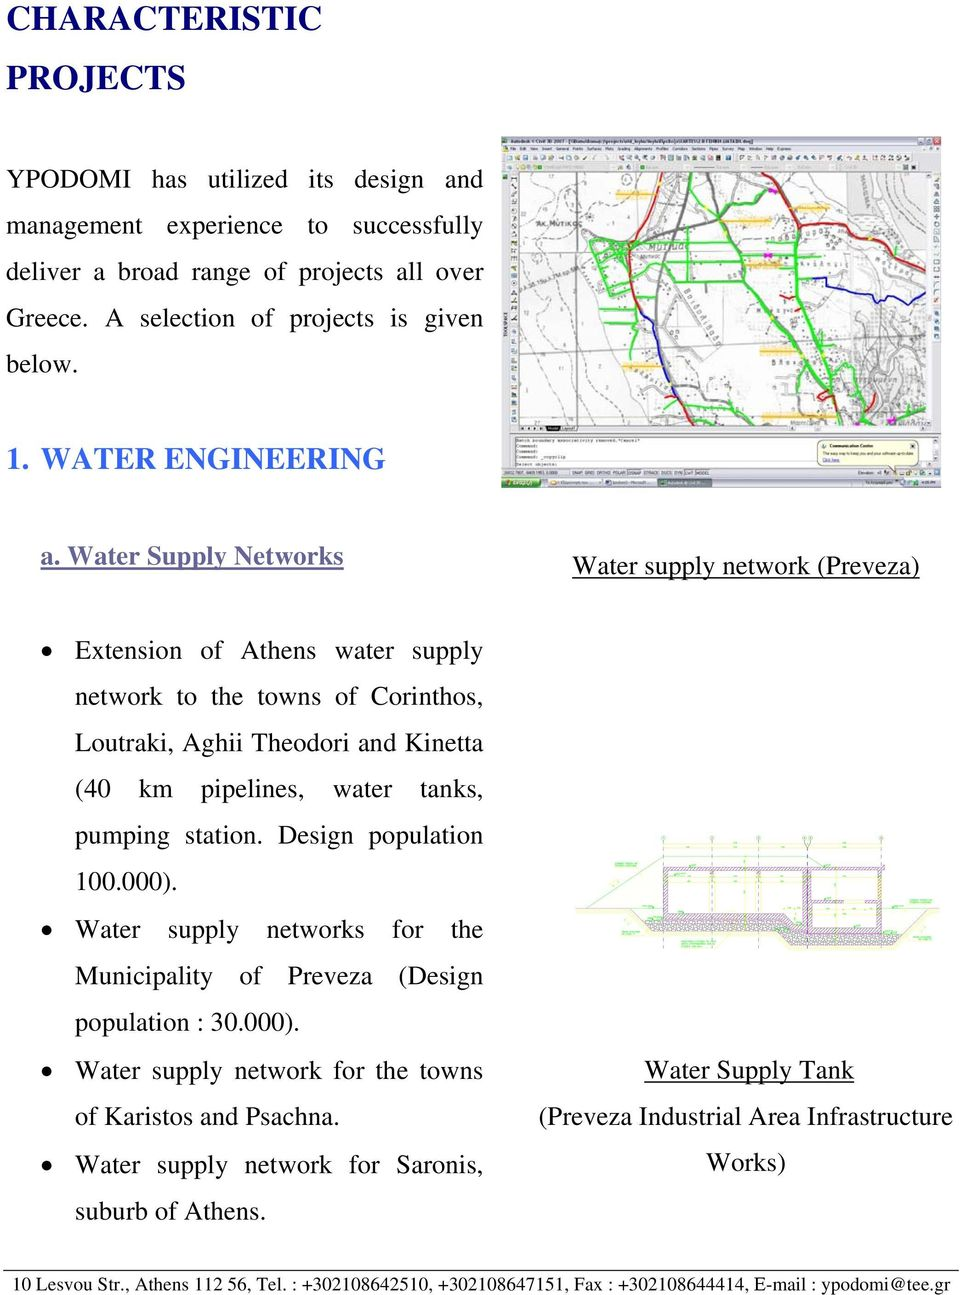 Water Supply Networks Water supply network (Preveza) Extension of Athens water supply network to the towns of Corinthos, Loutraki, Aghii Theodori and Kinetta (40 km pipelines, water tanks, pumping